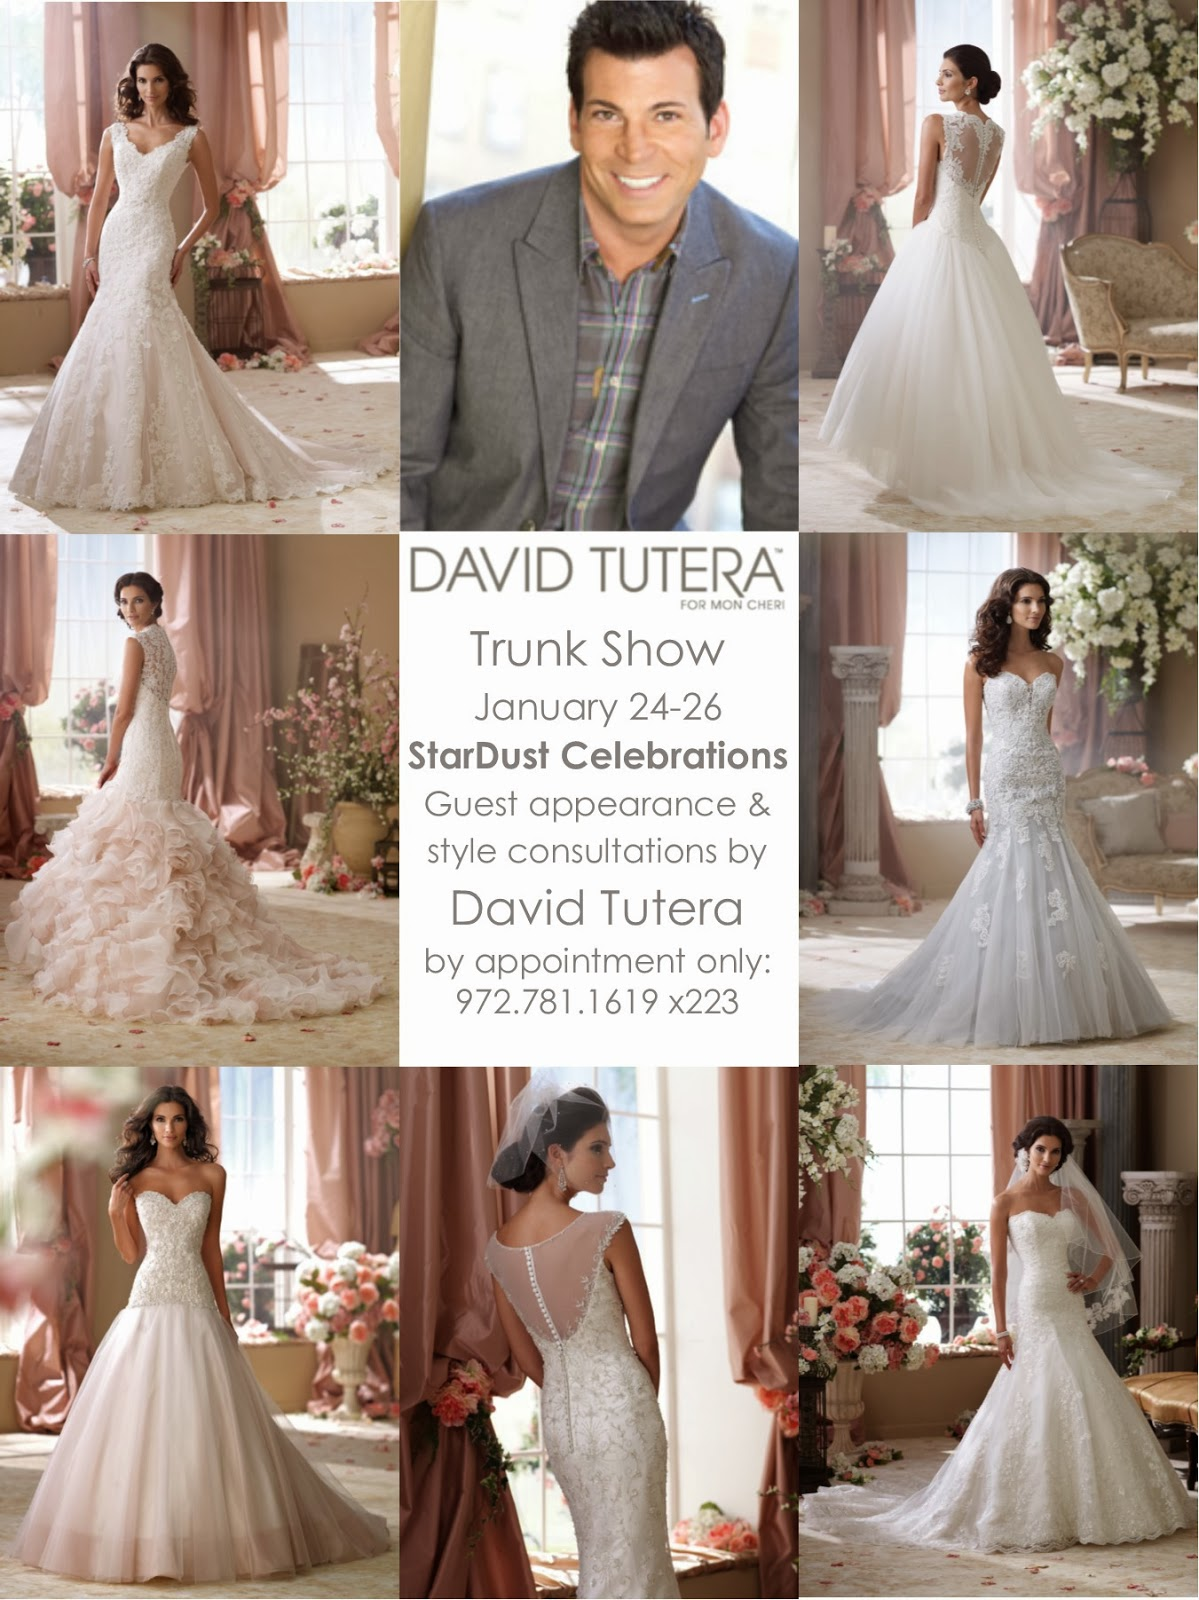 88b1893d0c81a Legendary Bridal Expert David Tutera to Style Brides at StarDust ...